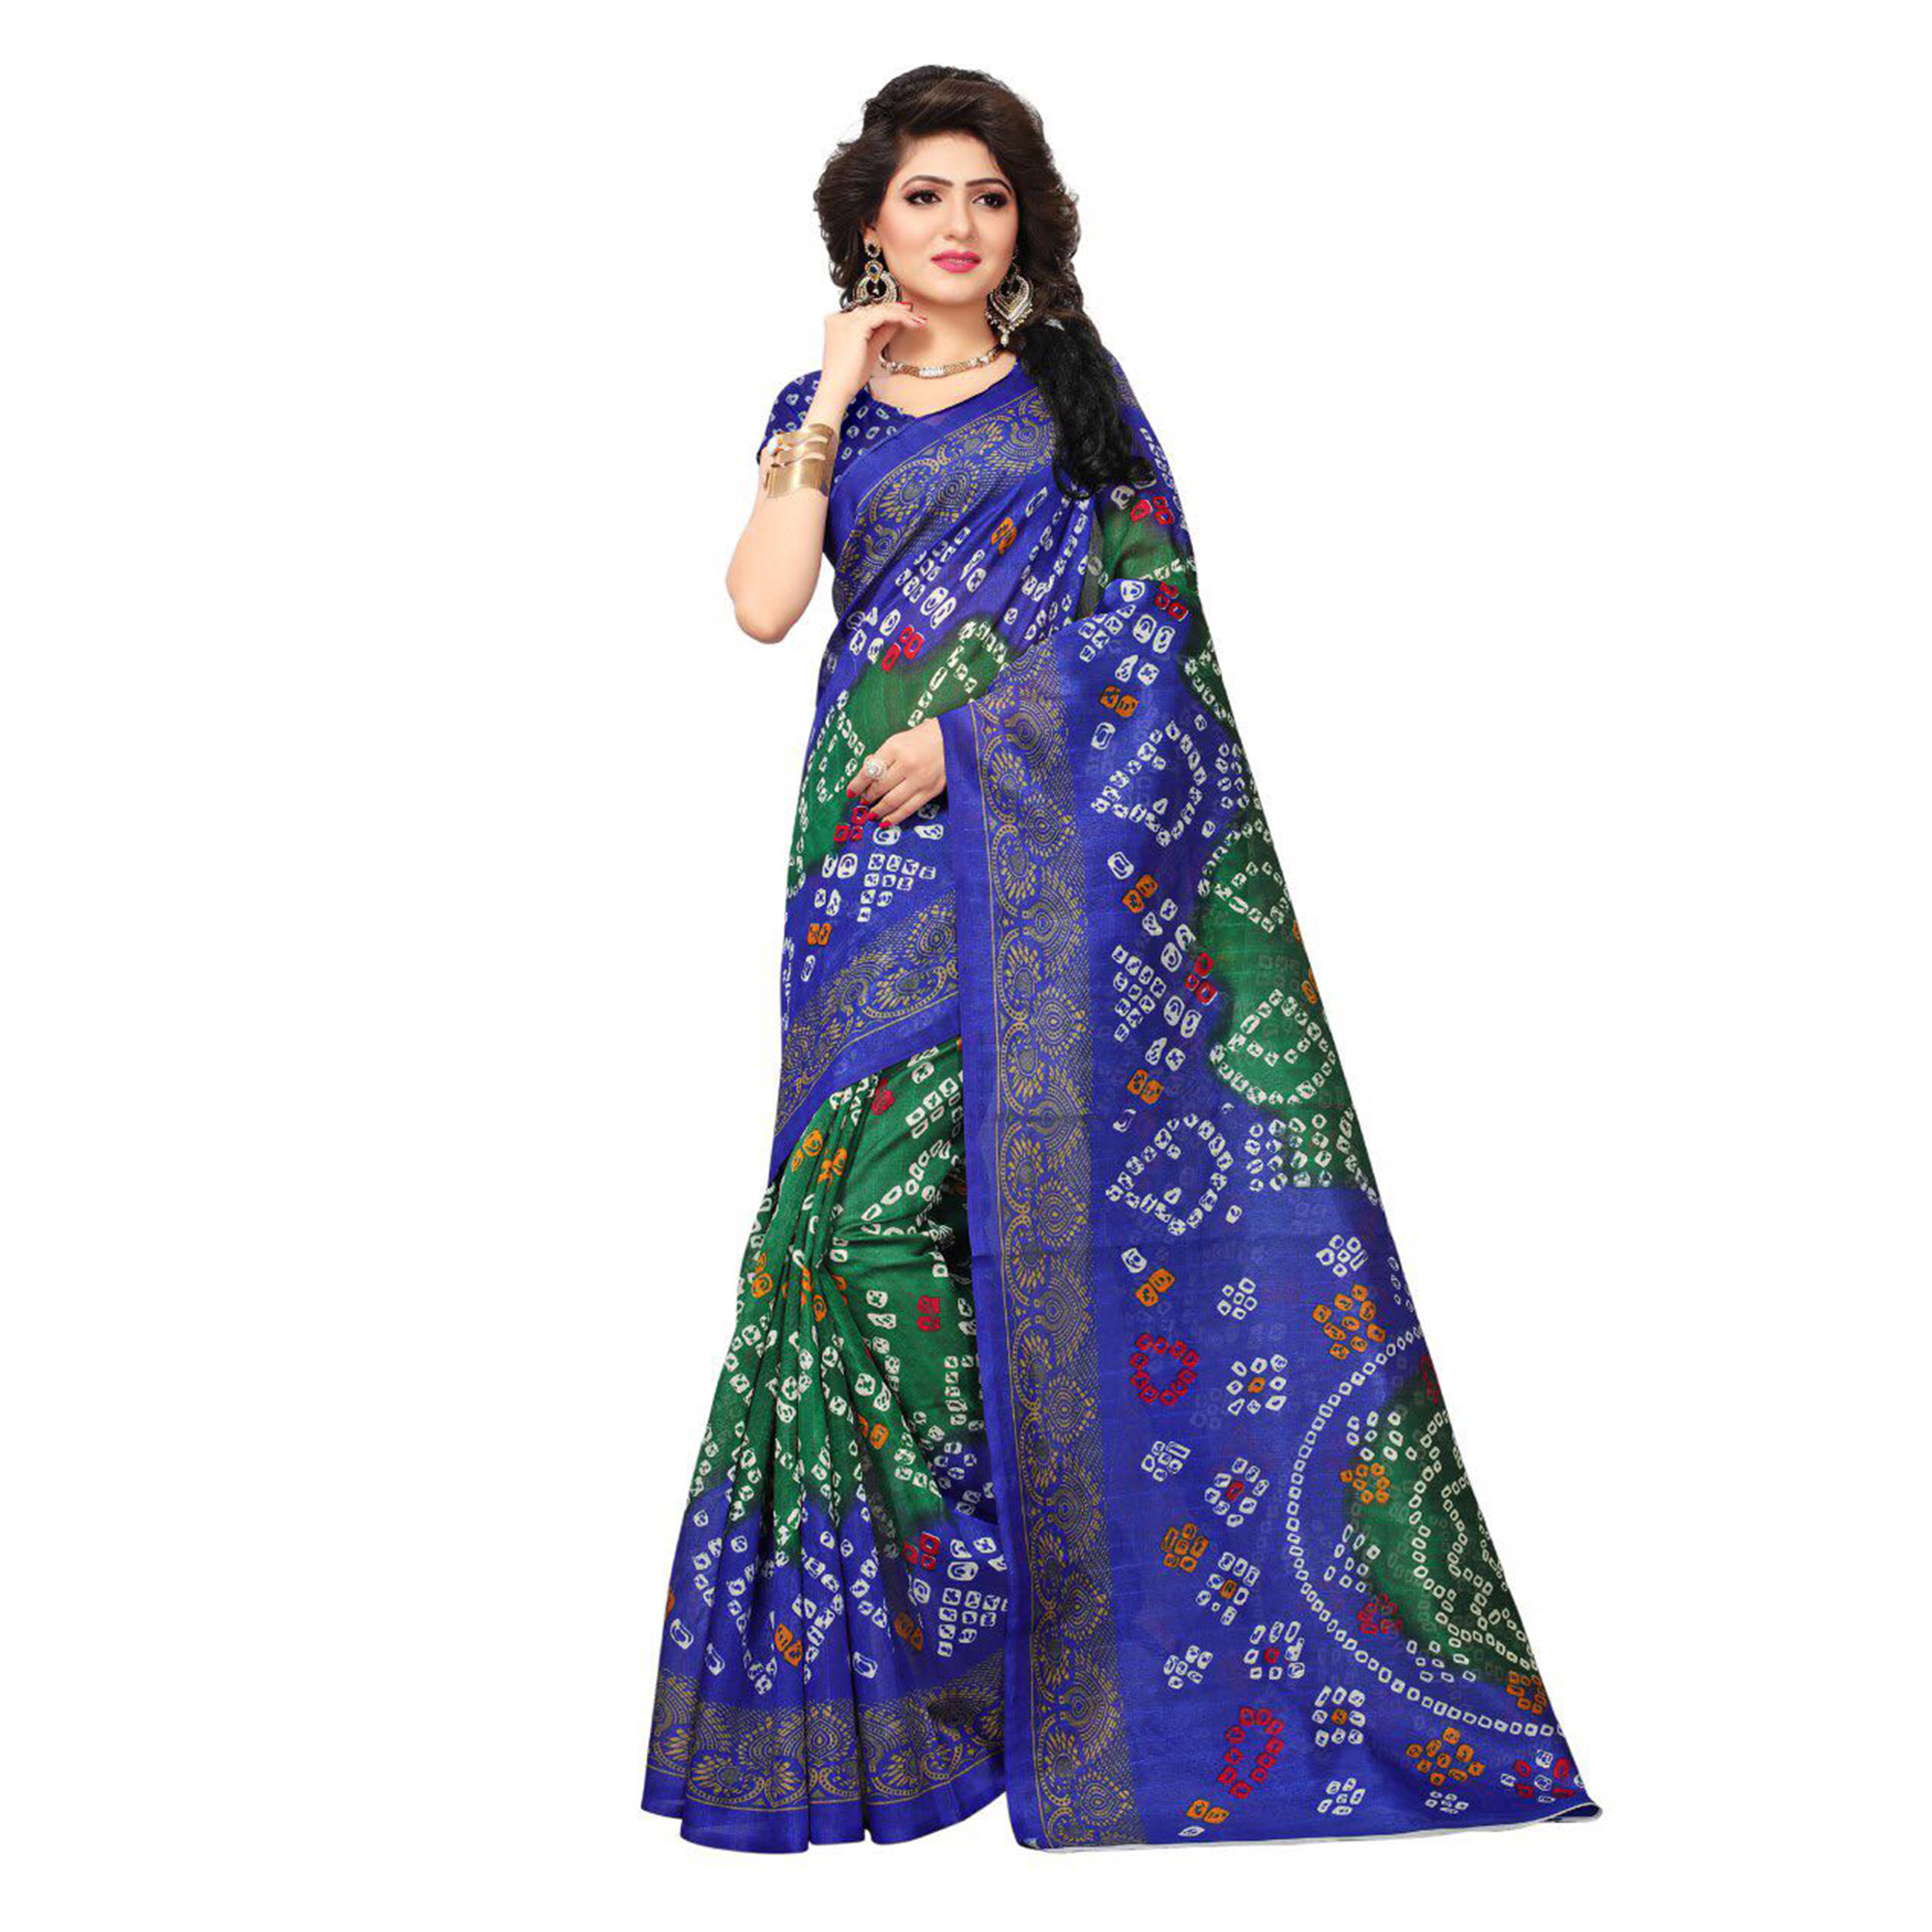 Eye-Catching Printed Festive Wear Bhagalpuri Silk Saree - Pack of 3